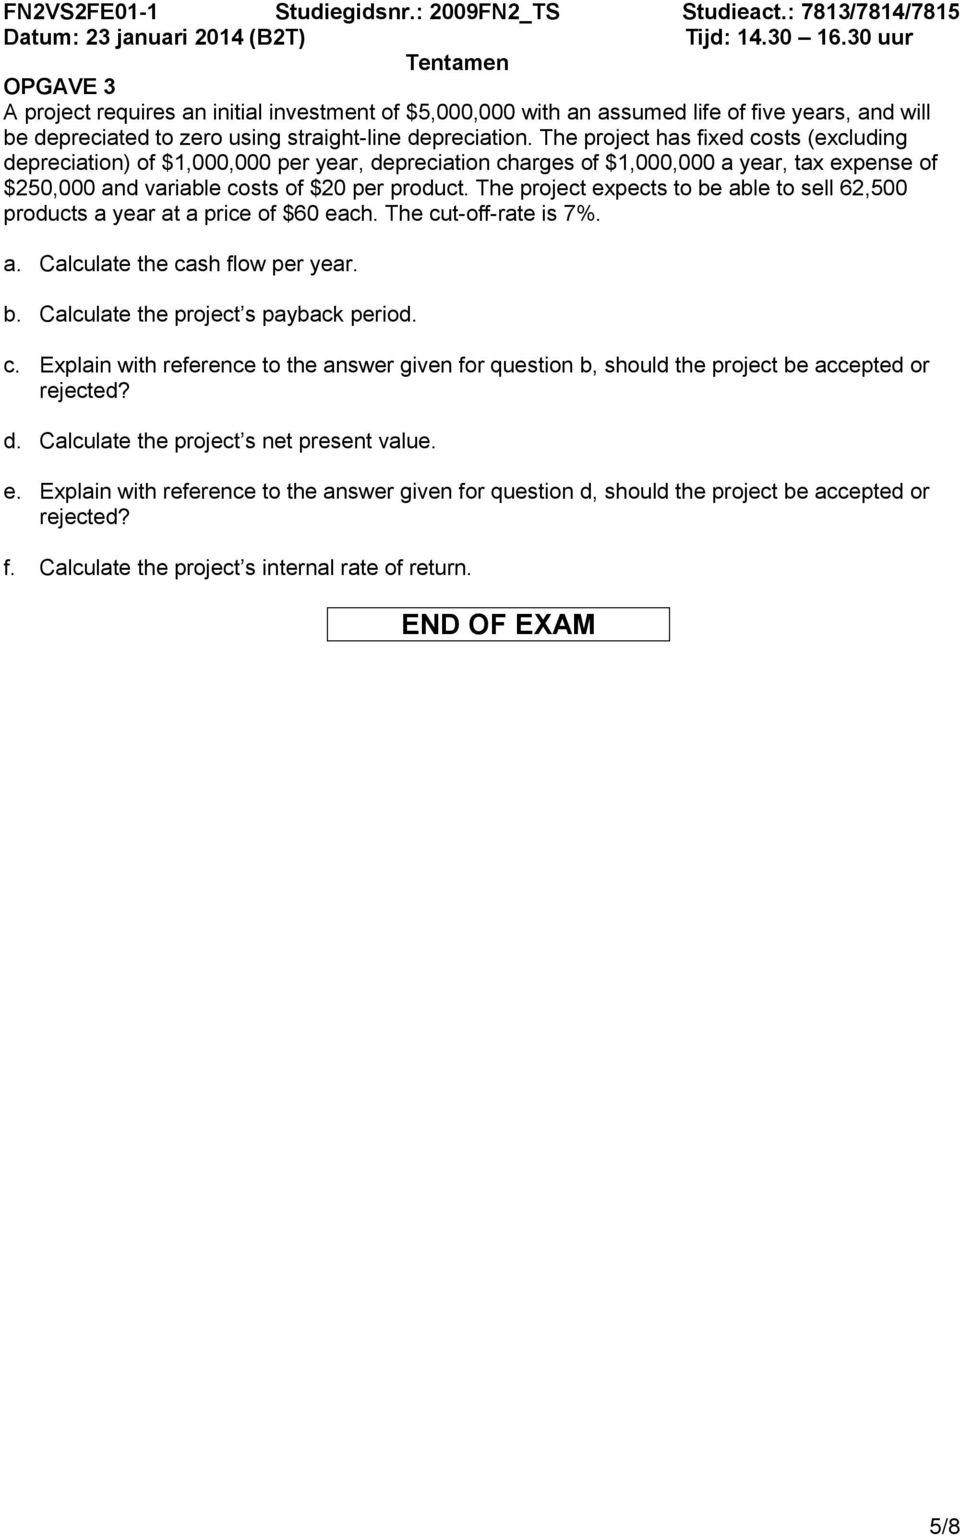 The project expects to be able to sell 62,500 products a year at a price of $60 each. The cut-off-rate is 7%. a. Calculate the cash flow per year. b. Calculate the project s payback period. c. Explain with reference to the answer given for question b, should the project be accepted or rejected?